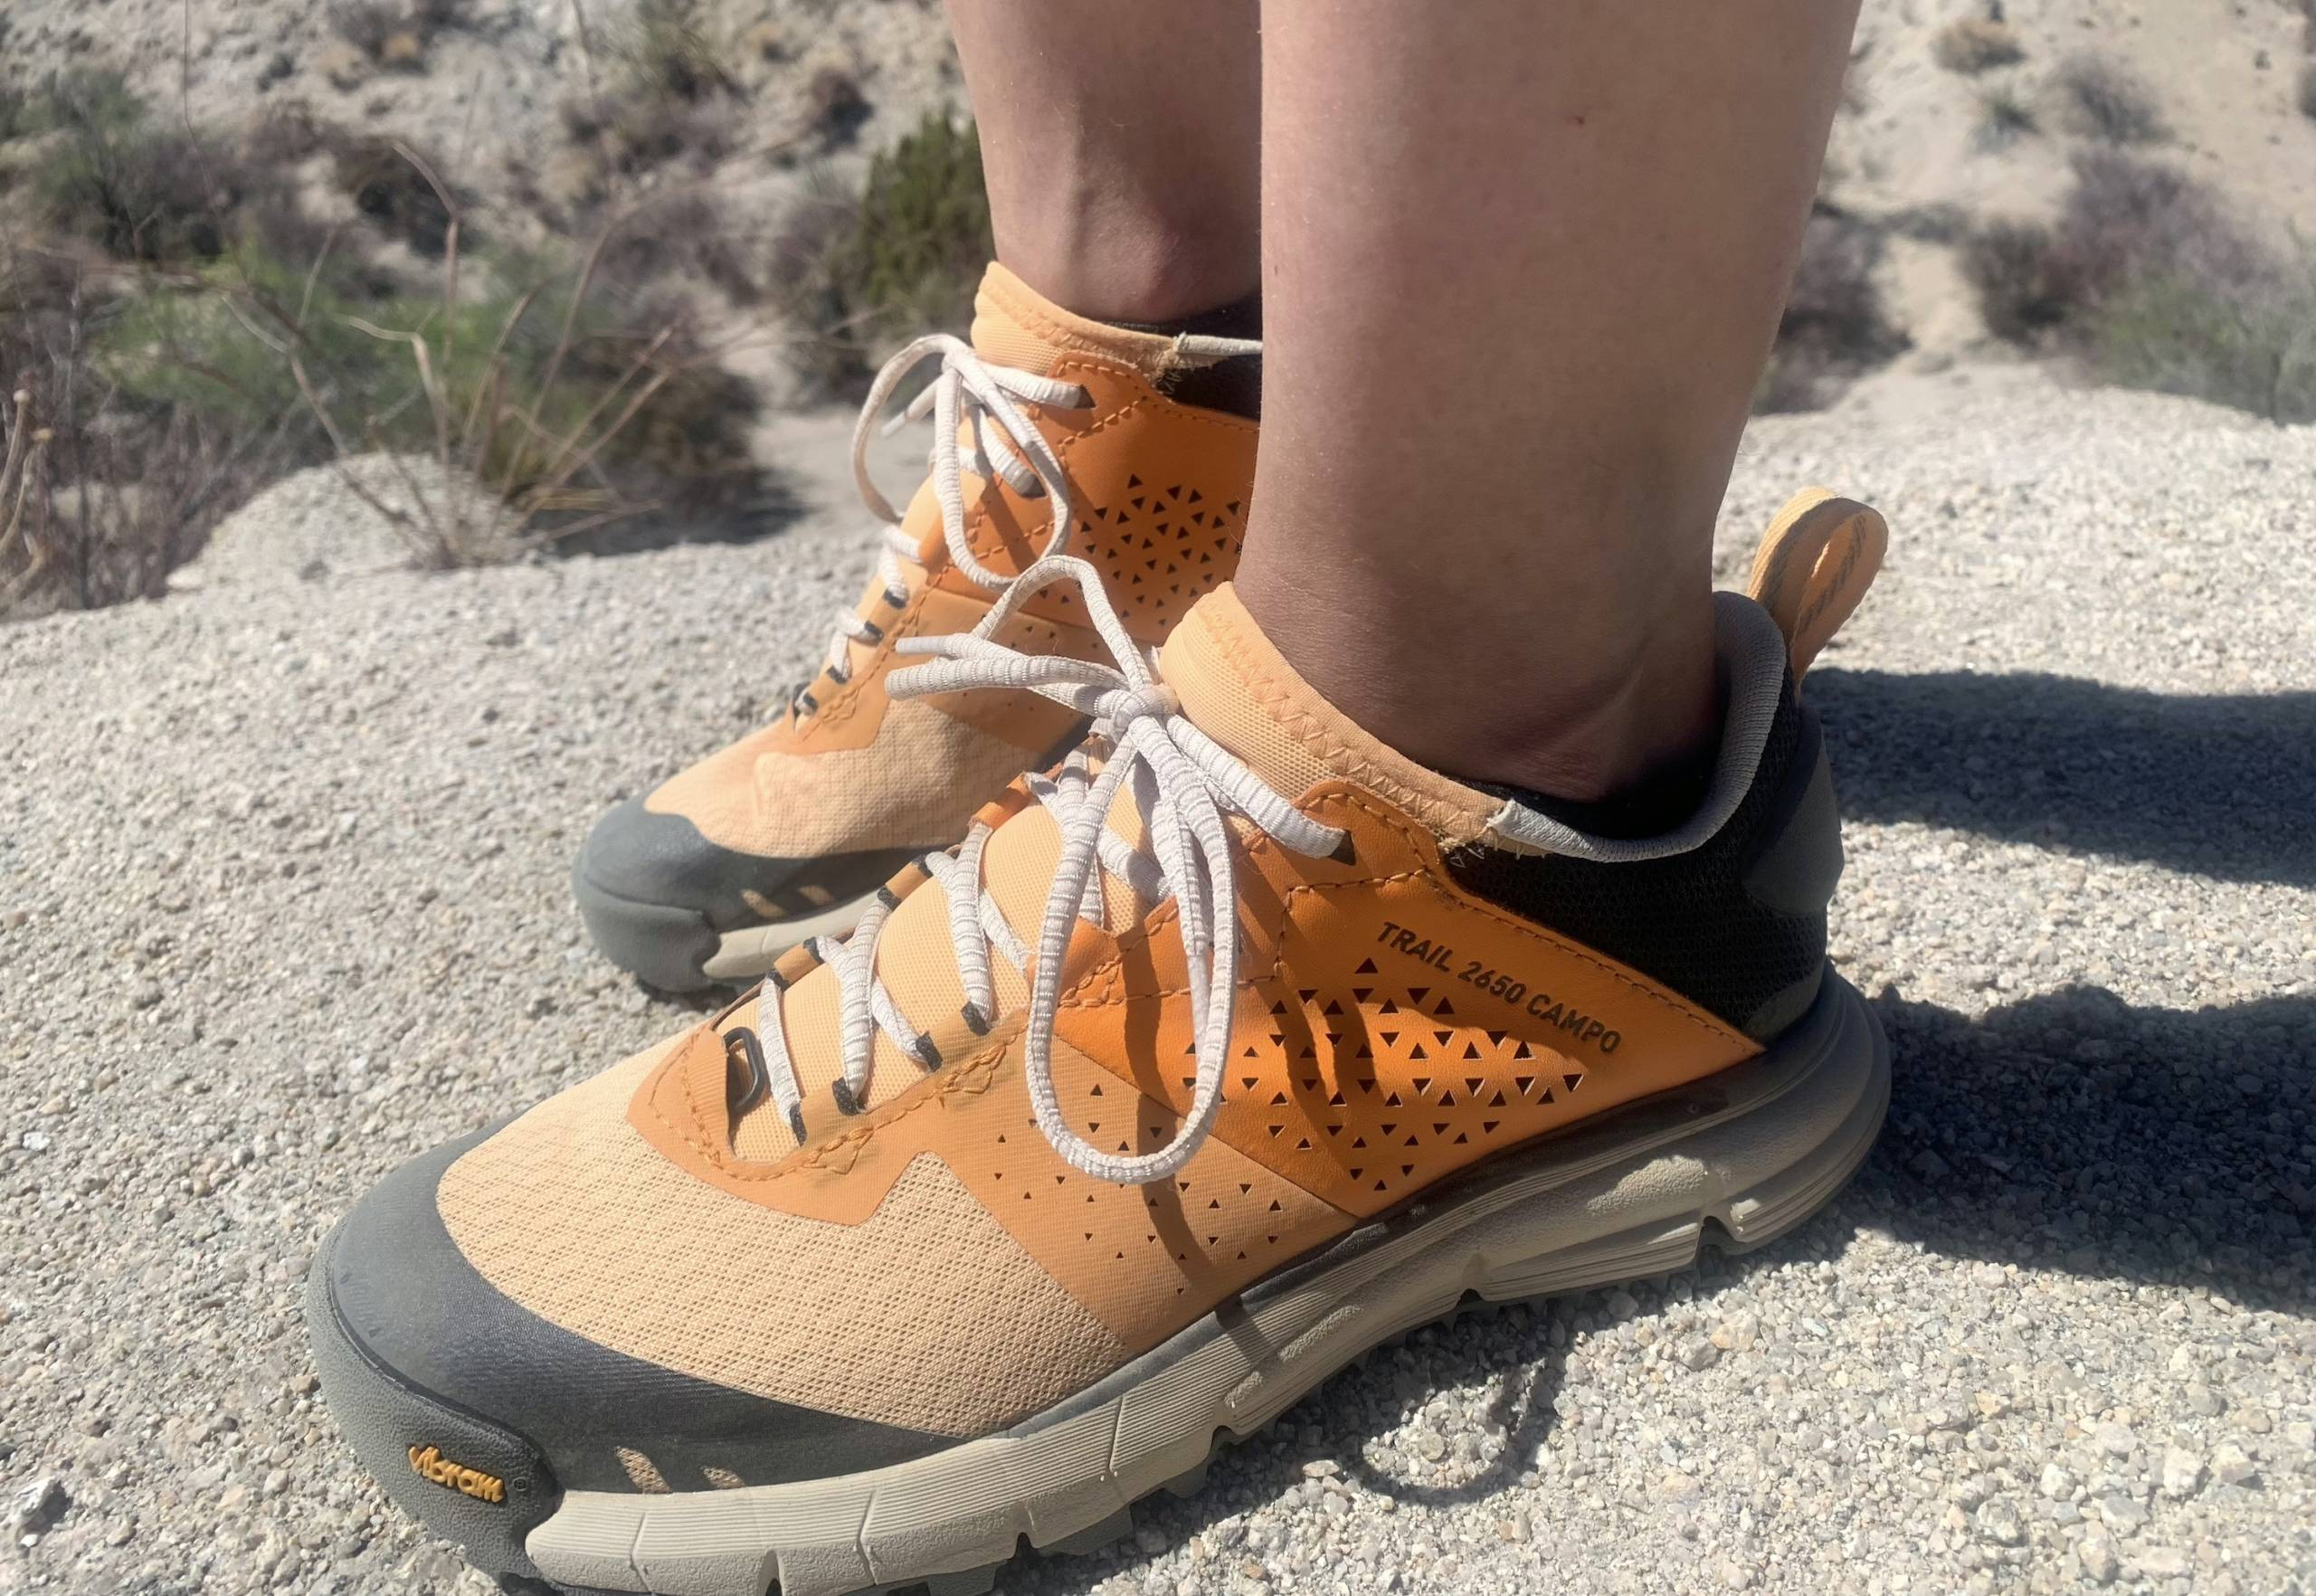 Danner 2650 Trail Campo hiker